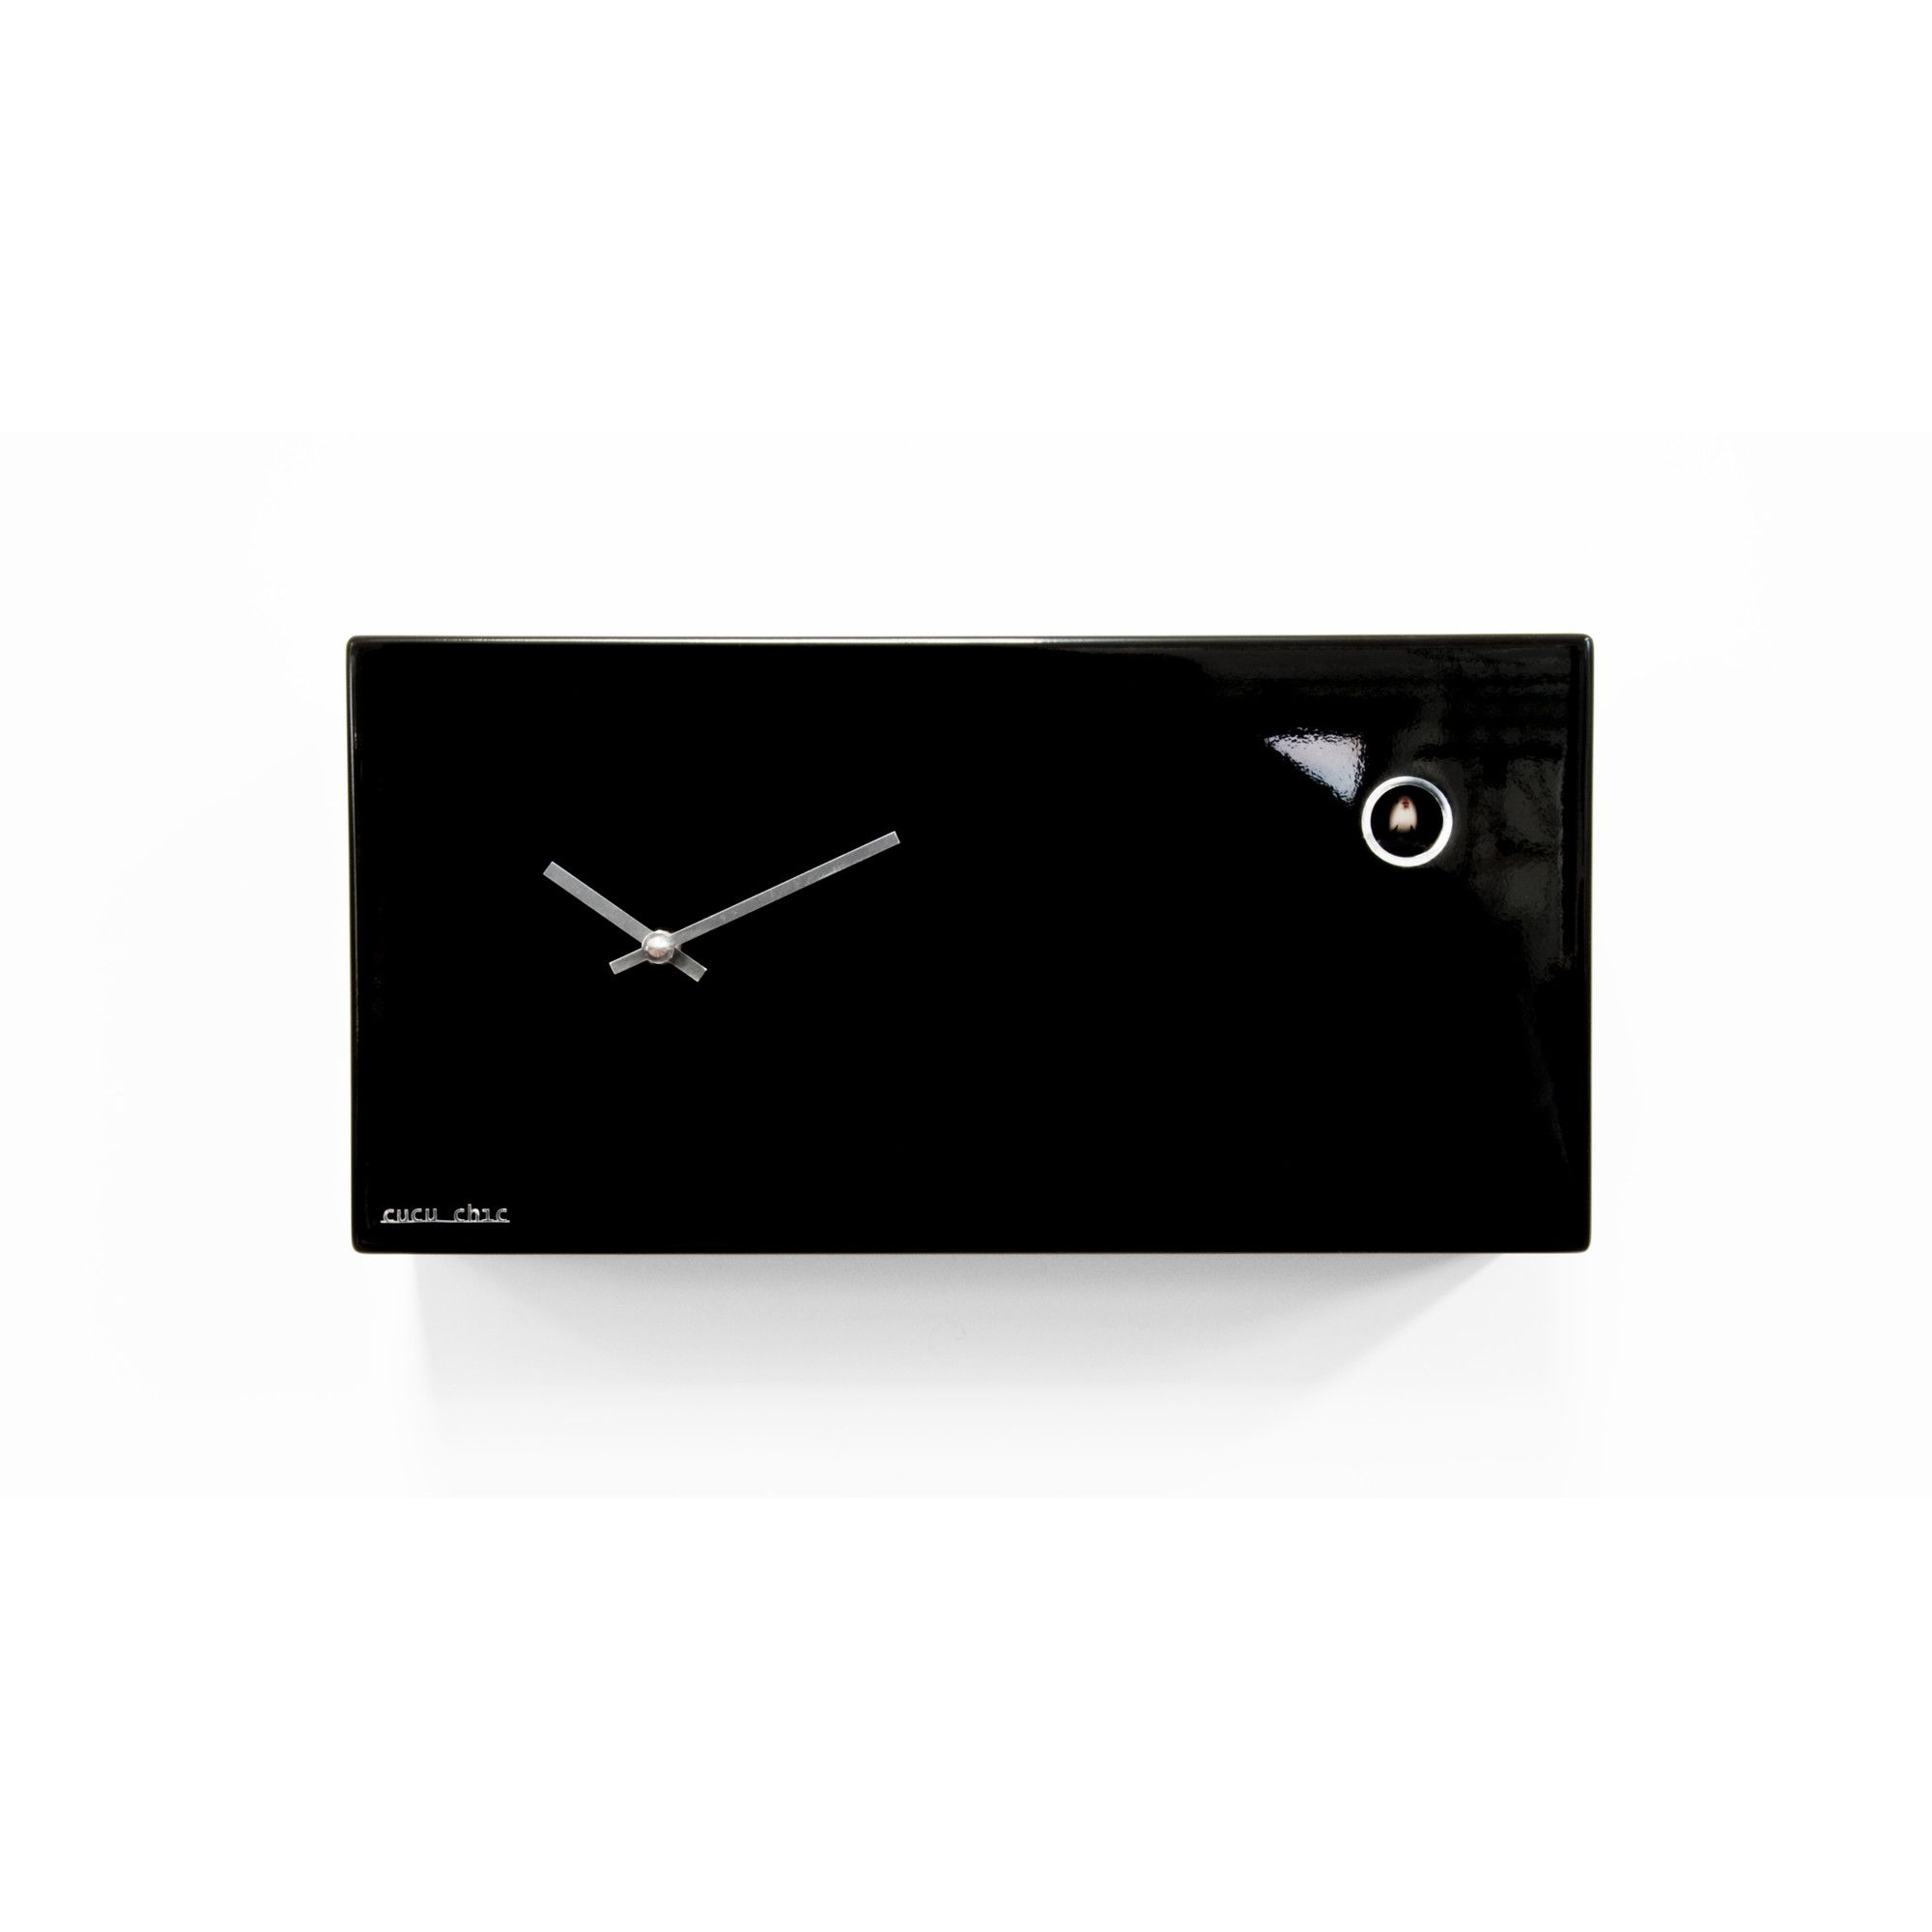 Progetti Cucu Chic Cuckoo Clock - Gloss Black at Tesco Direct